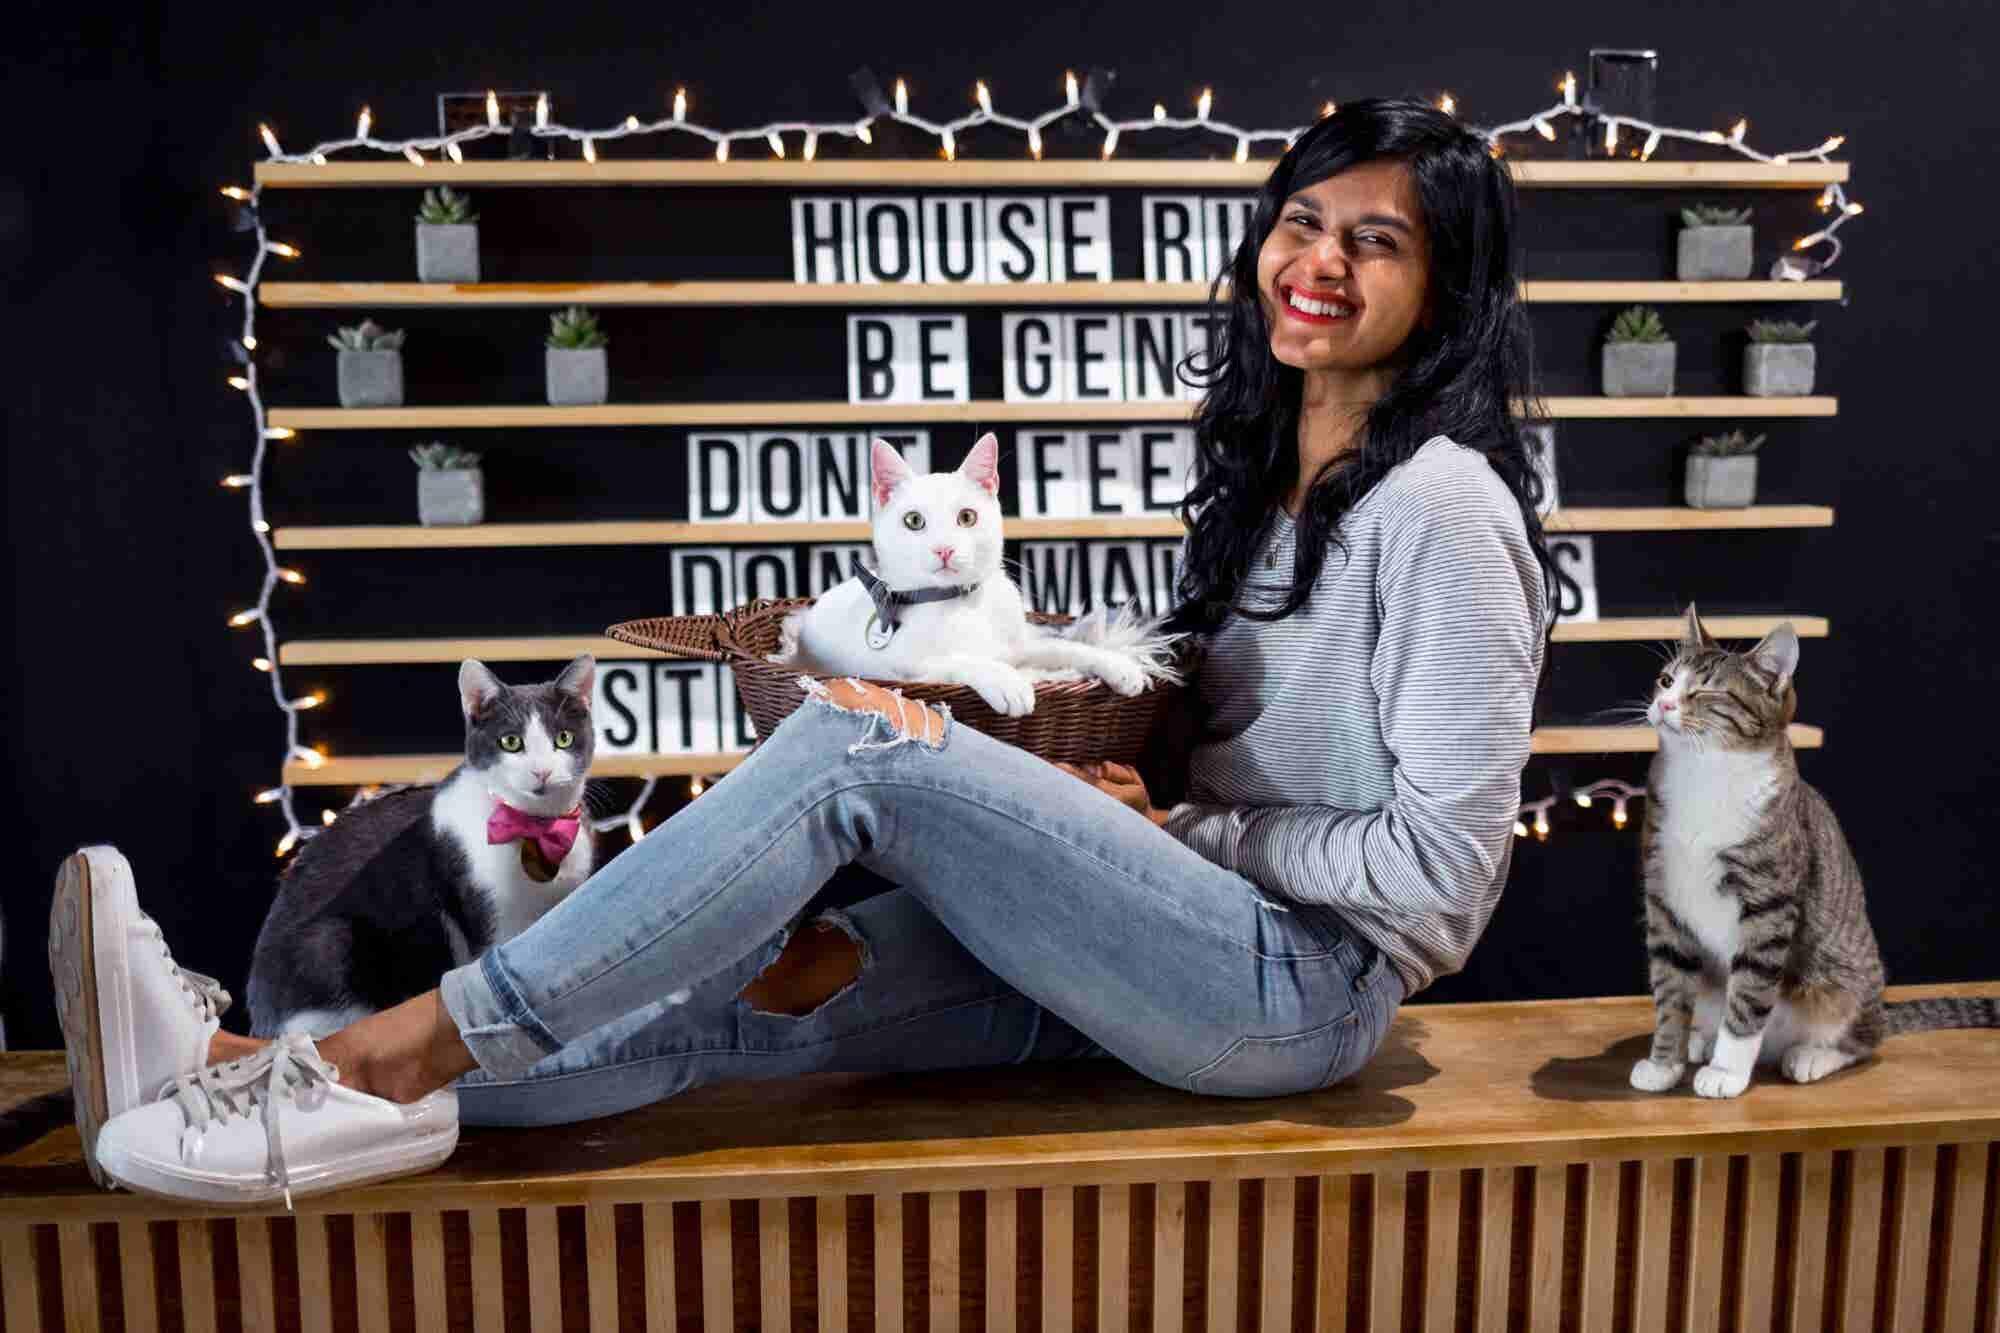 From 'Ow' to 'Meow': A Young Catpreneur Discovers Her Own Meaning of S...